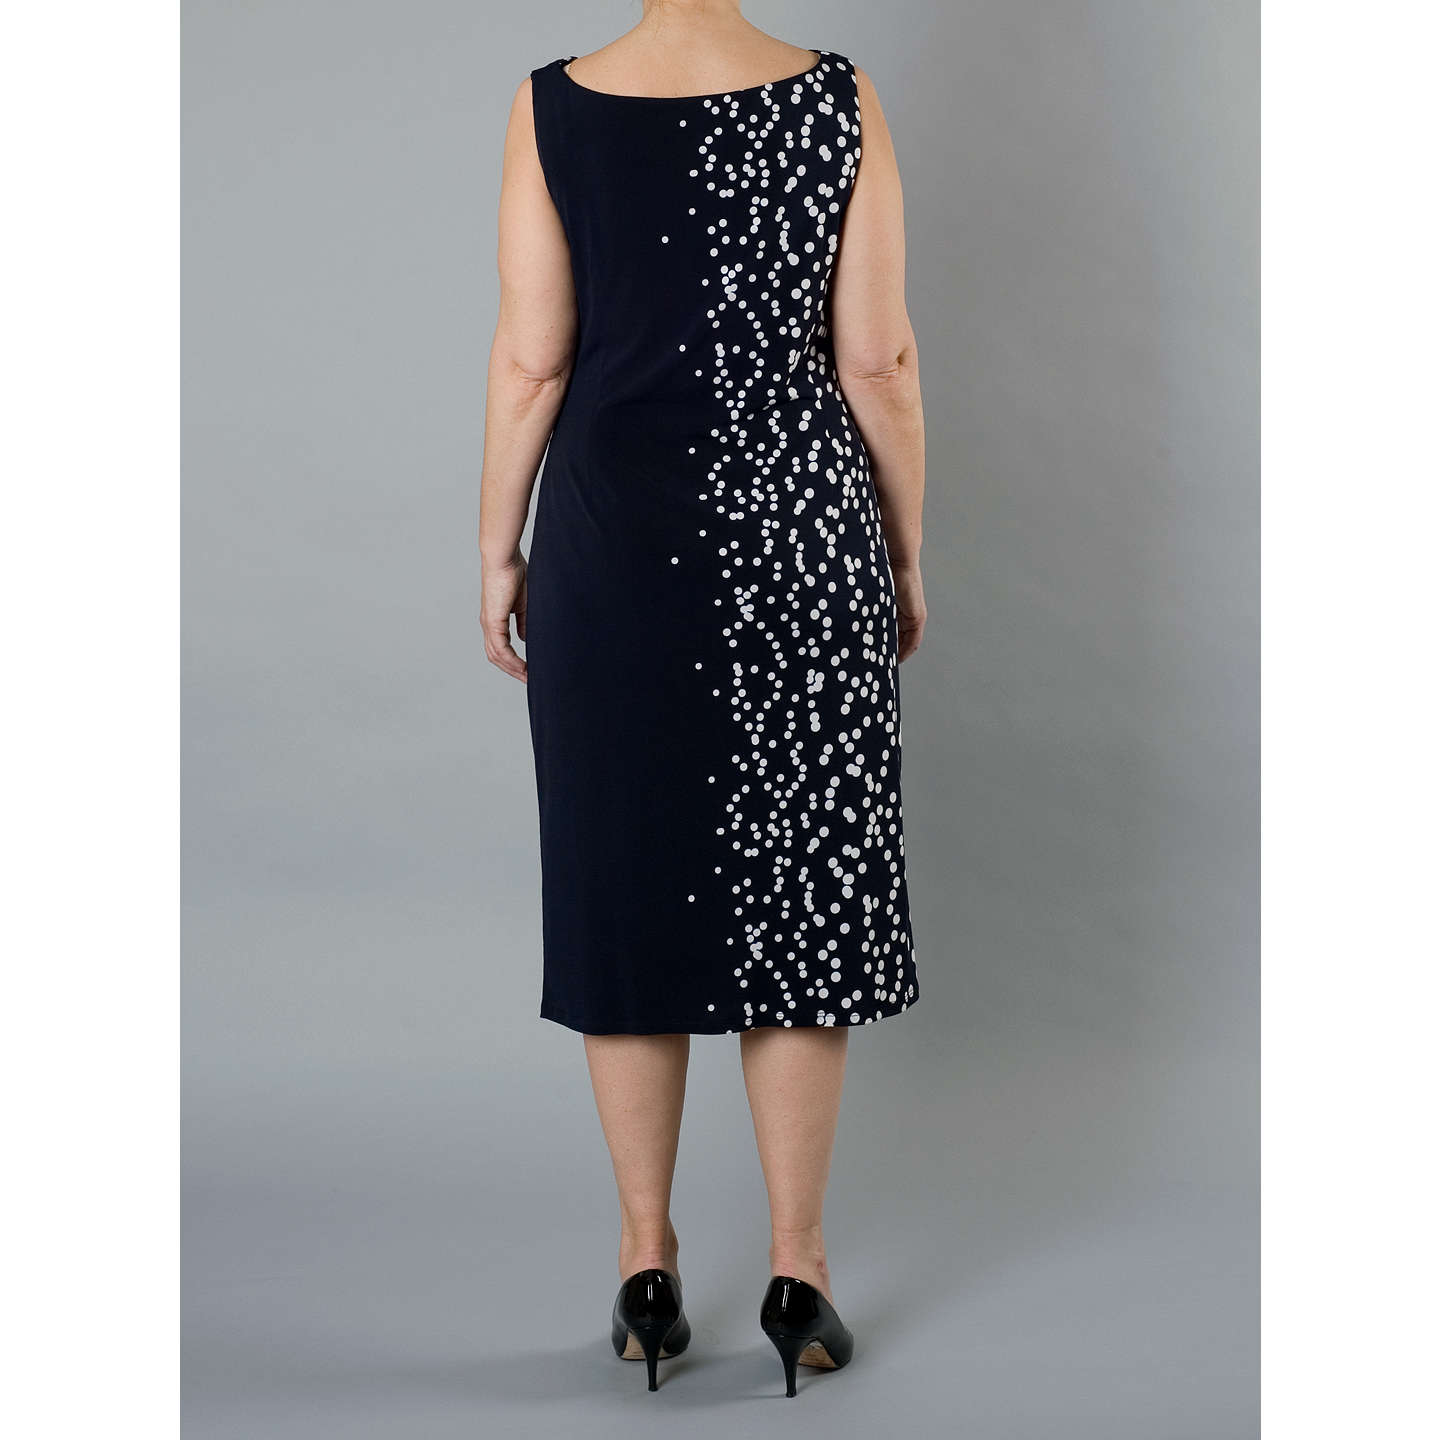 BuyChesca Spot Dress, Navy/White, 12 Online at johnlewis.com